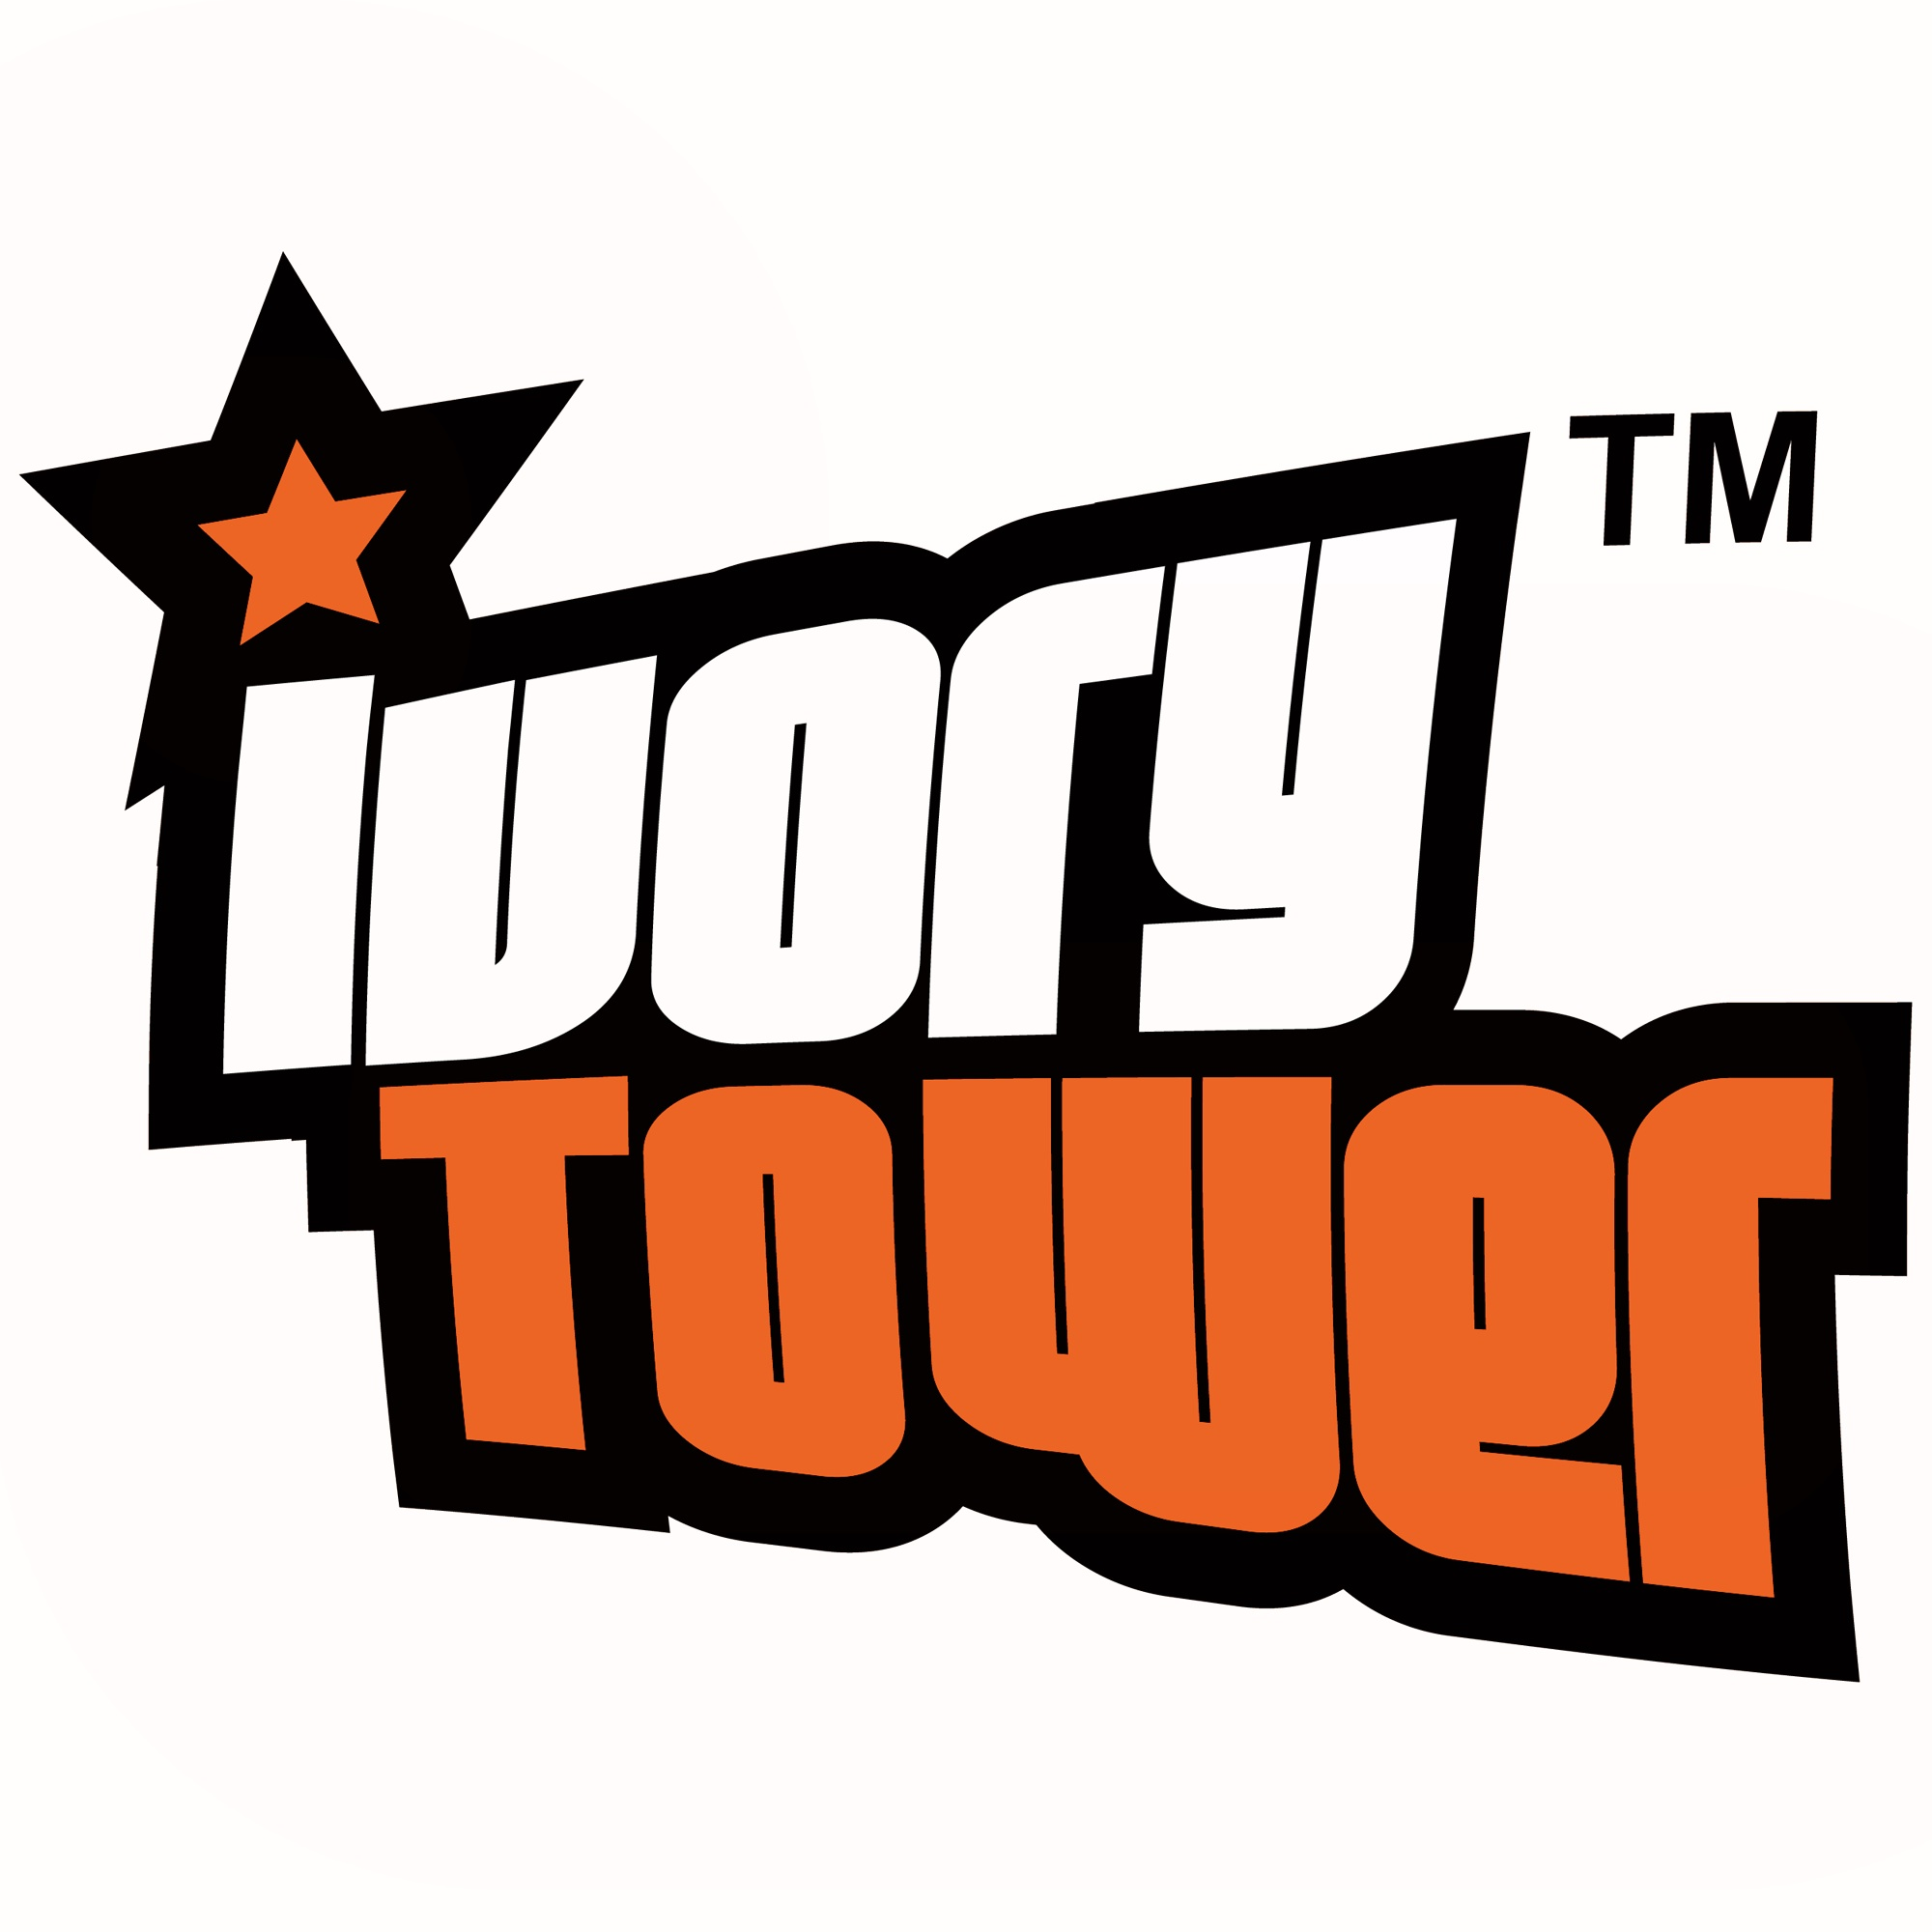 Ivory towers dating website